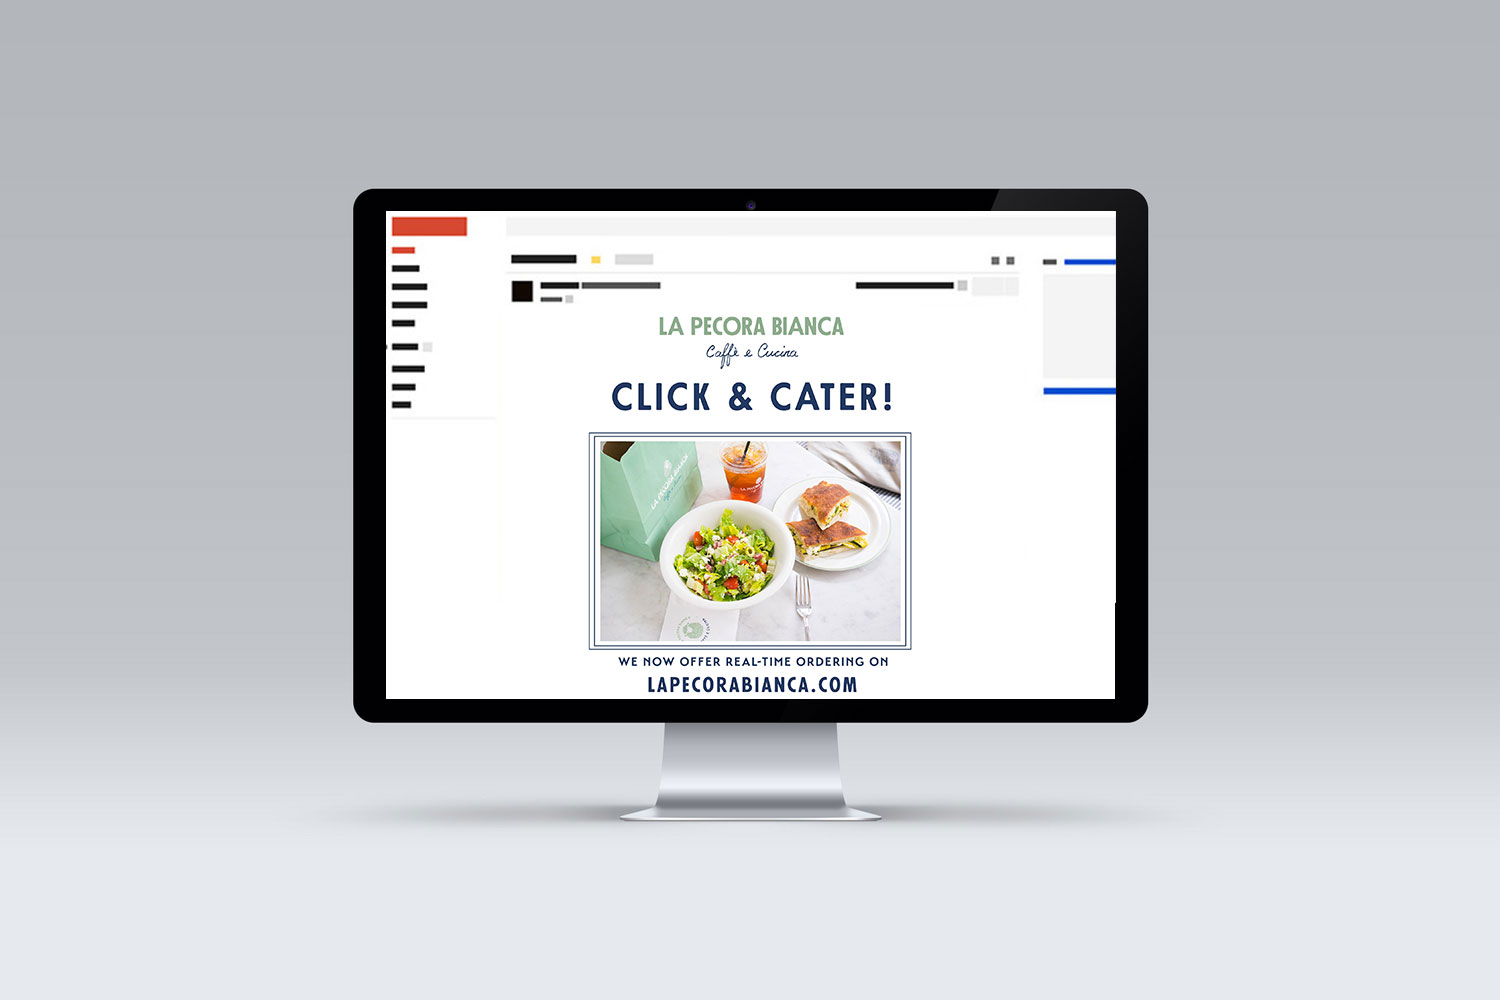 la-pecora-bianca-click-and-cater-email.jpg